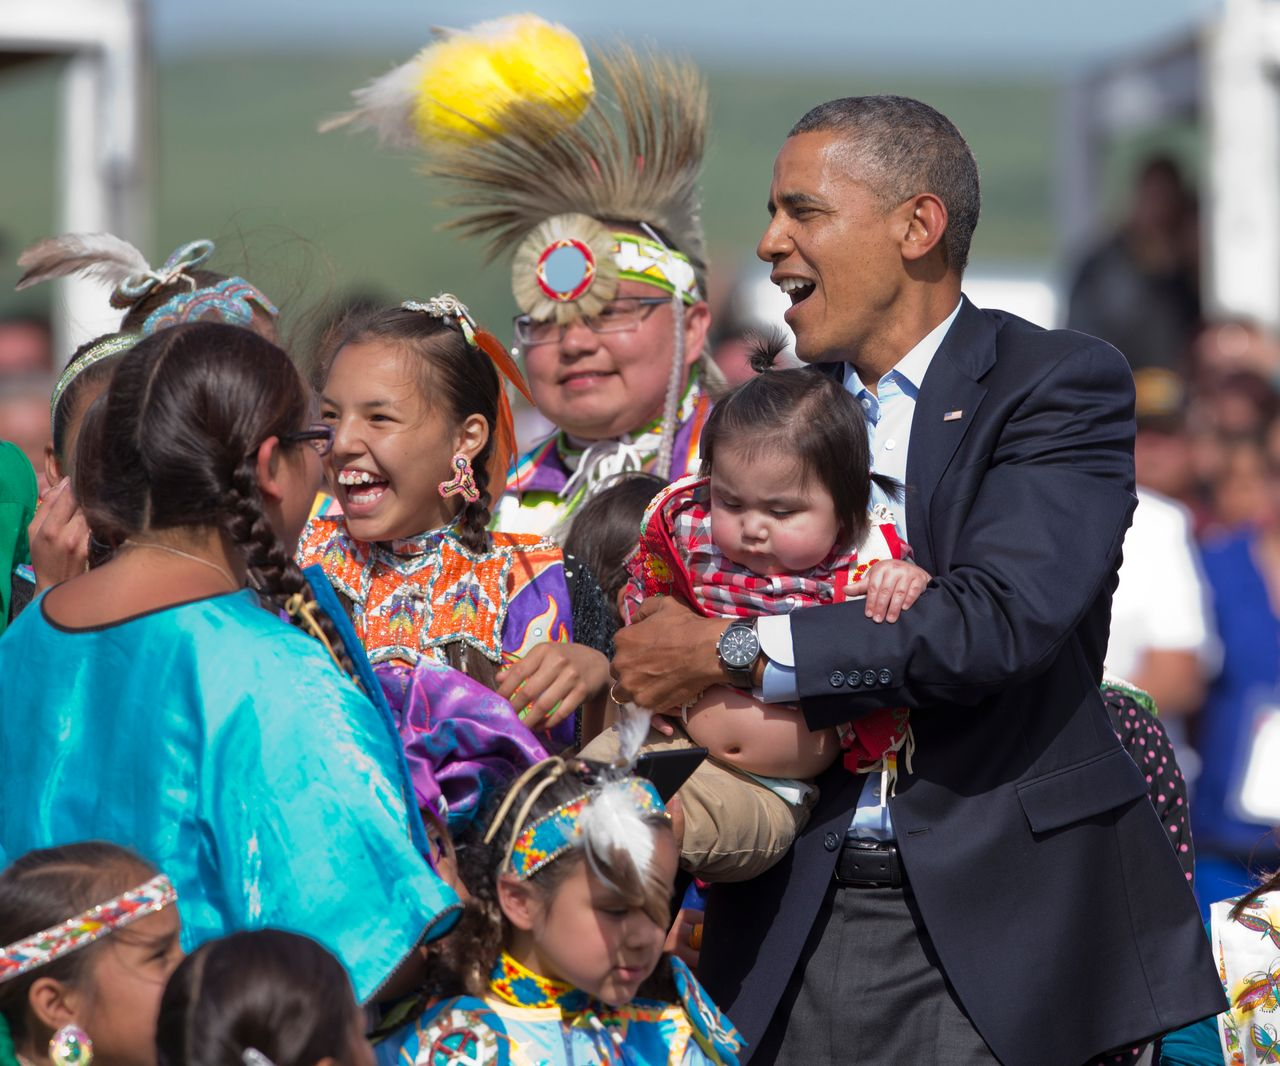 President Obama joins members of the Standing Rock Sioux Tribal Nation for a celebration in June, 2014.